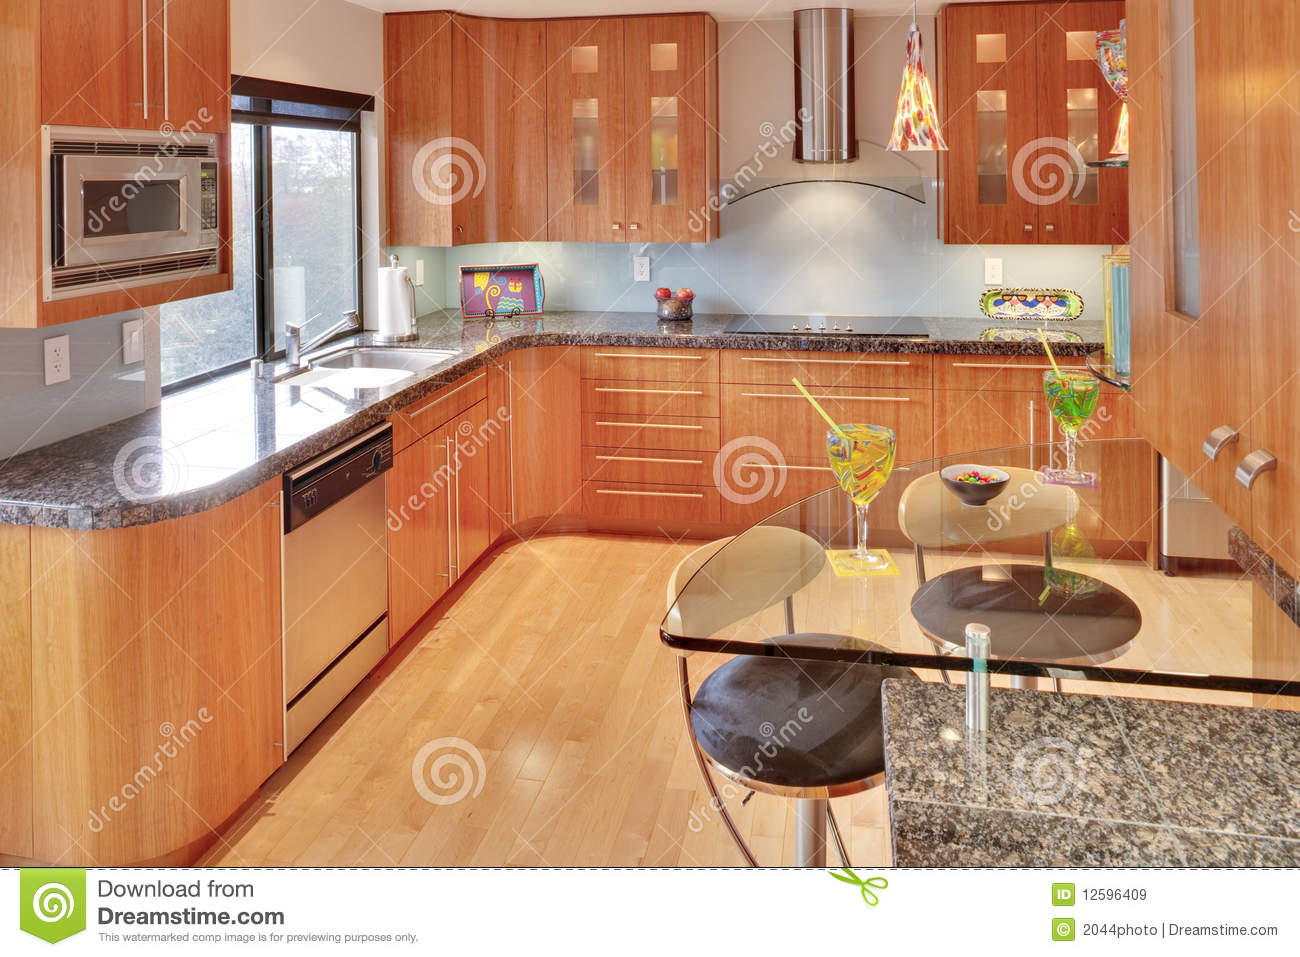 Super modern contemporary kitchen royalty free stock - Cuisine bois clair moderne ...